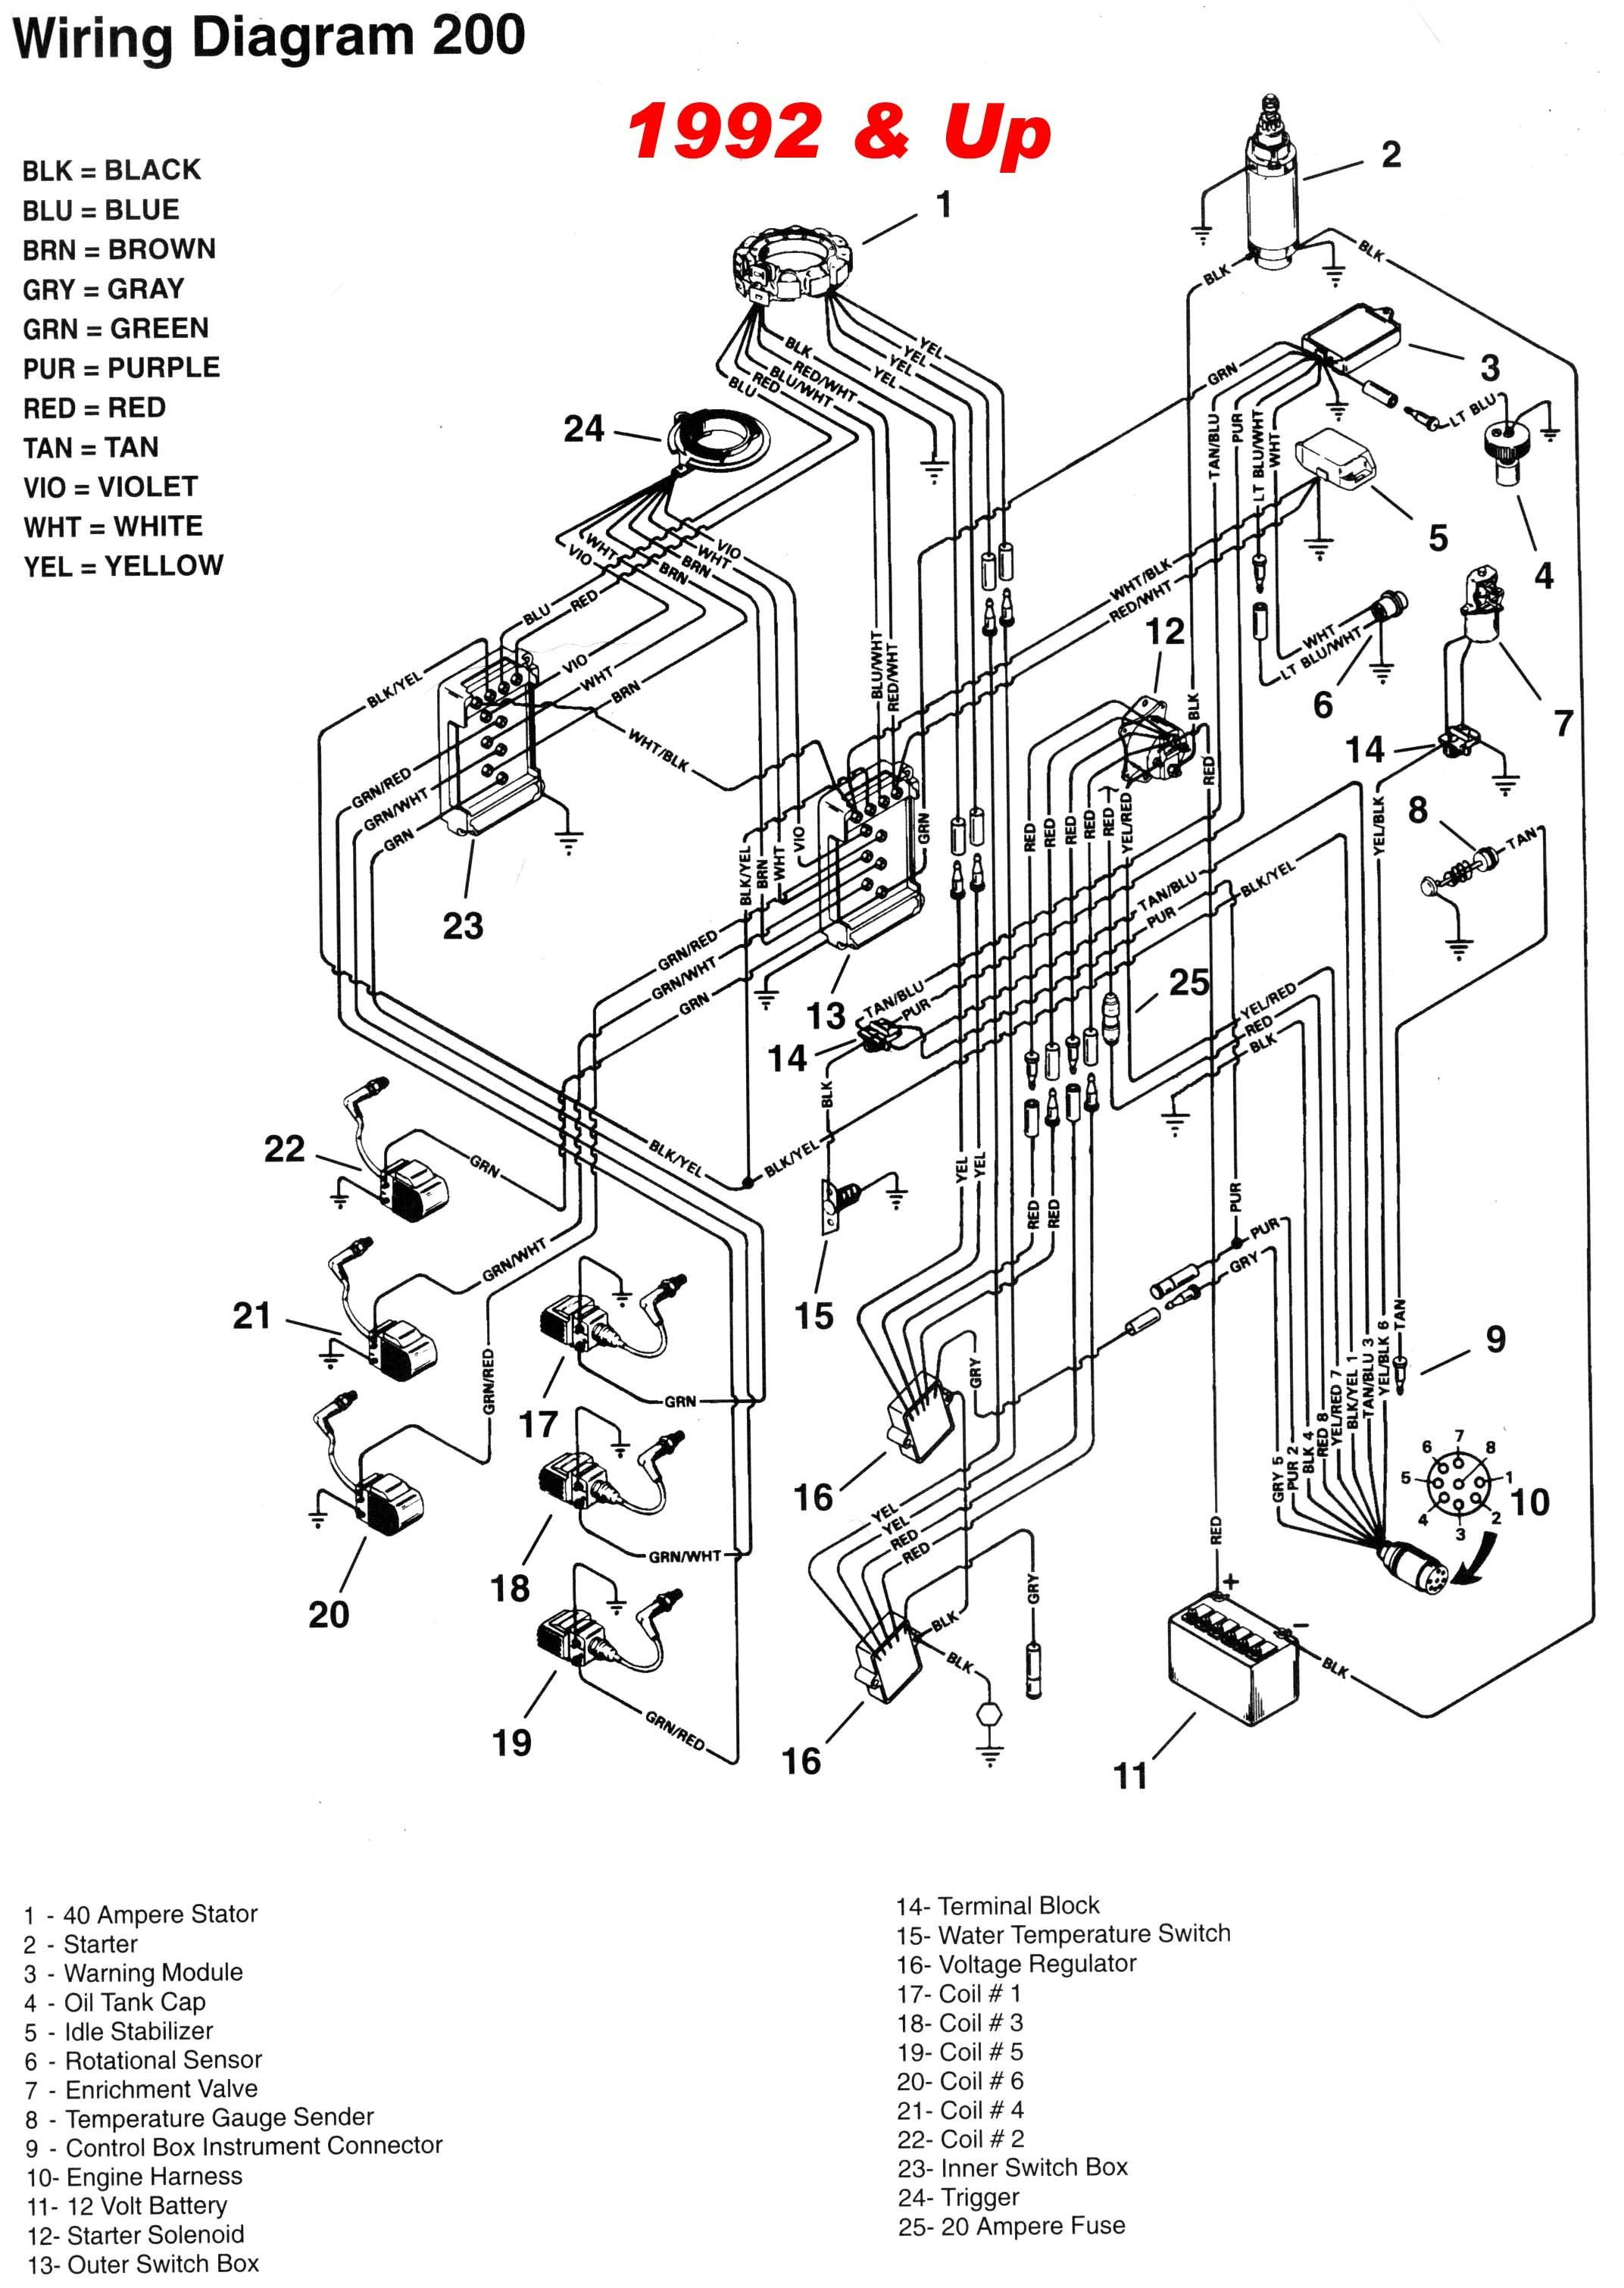 Diagram 1971 Mariner Wiring Diagram Full Version Hd Quality Wiring Diagram Goldwiring18 Newsetvlucera It